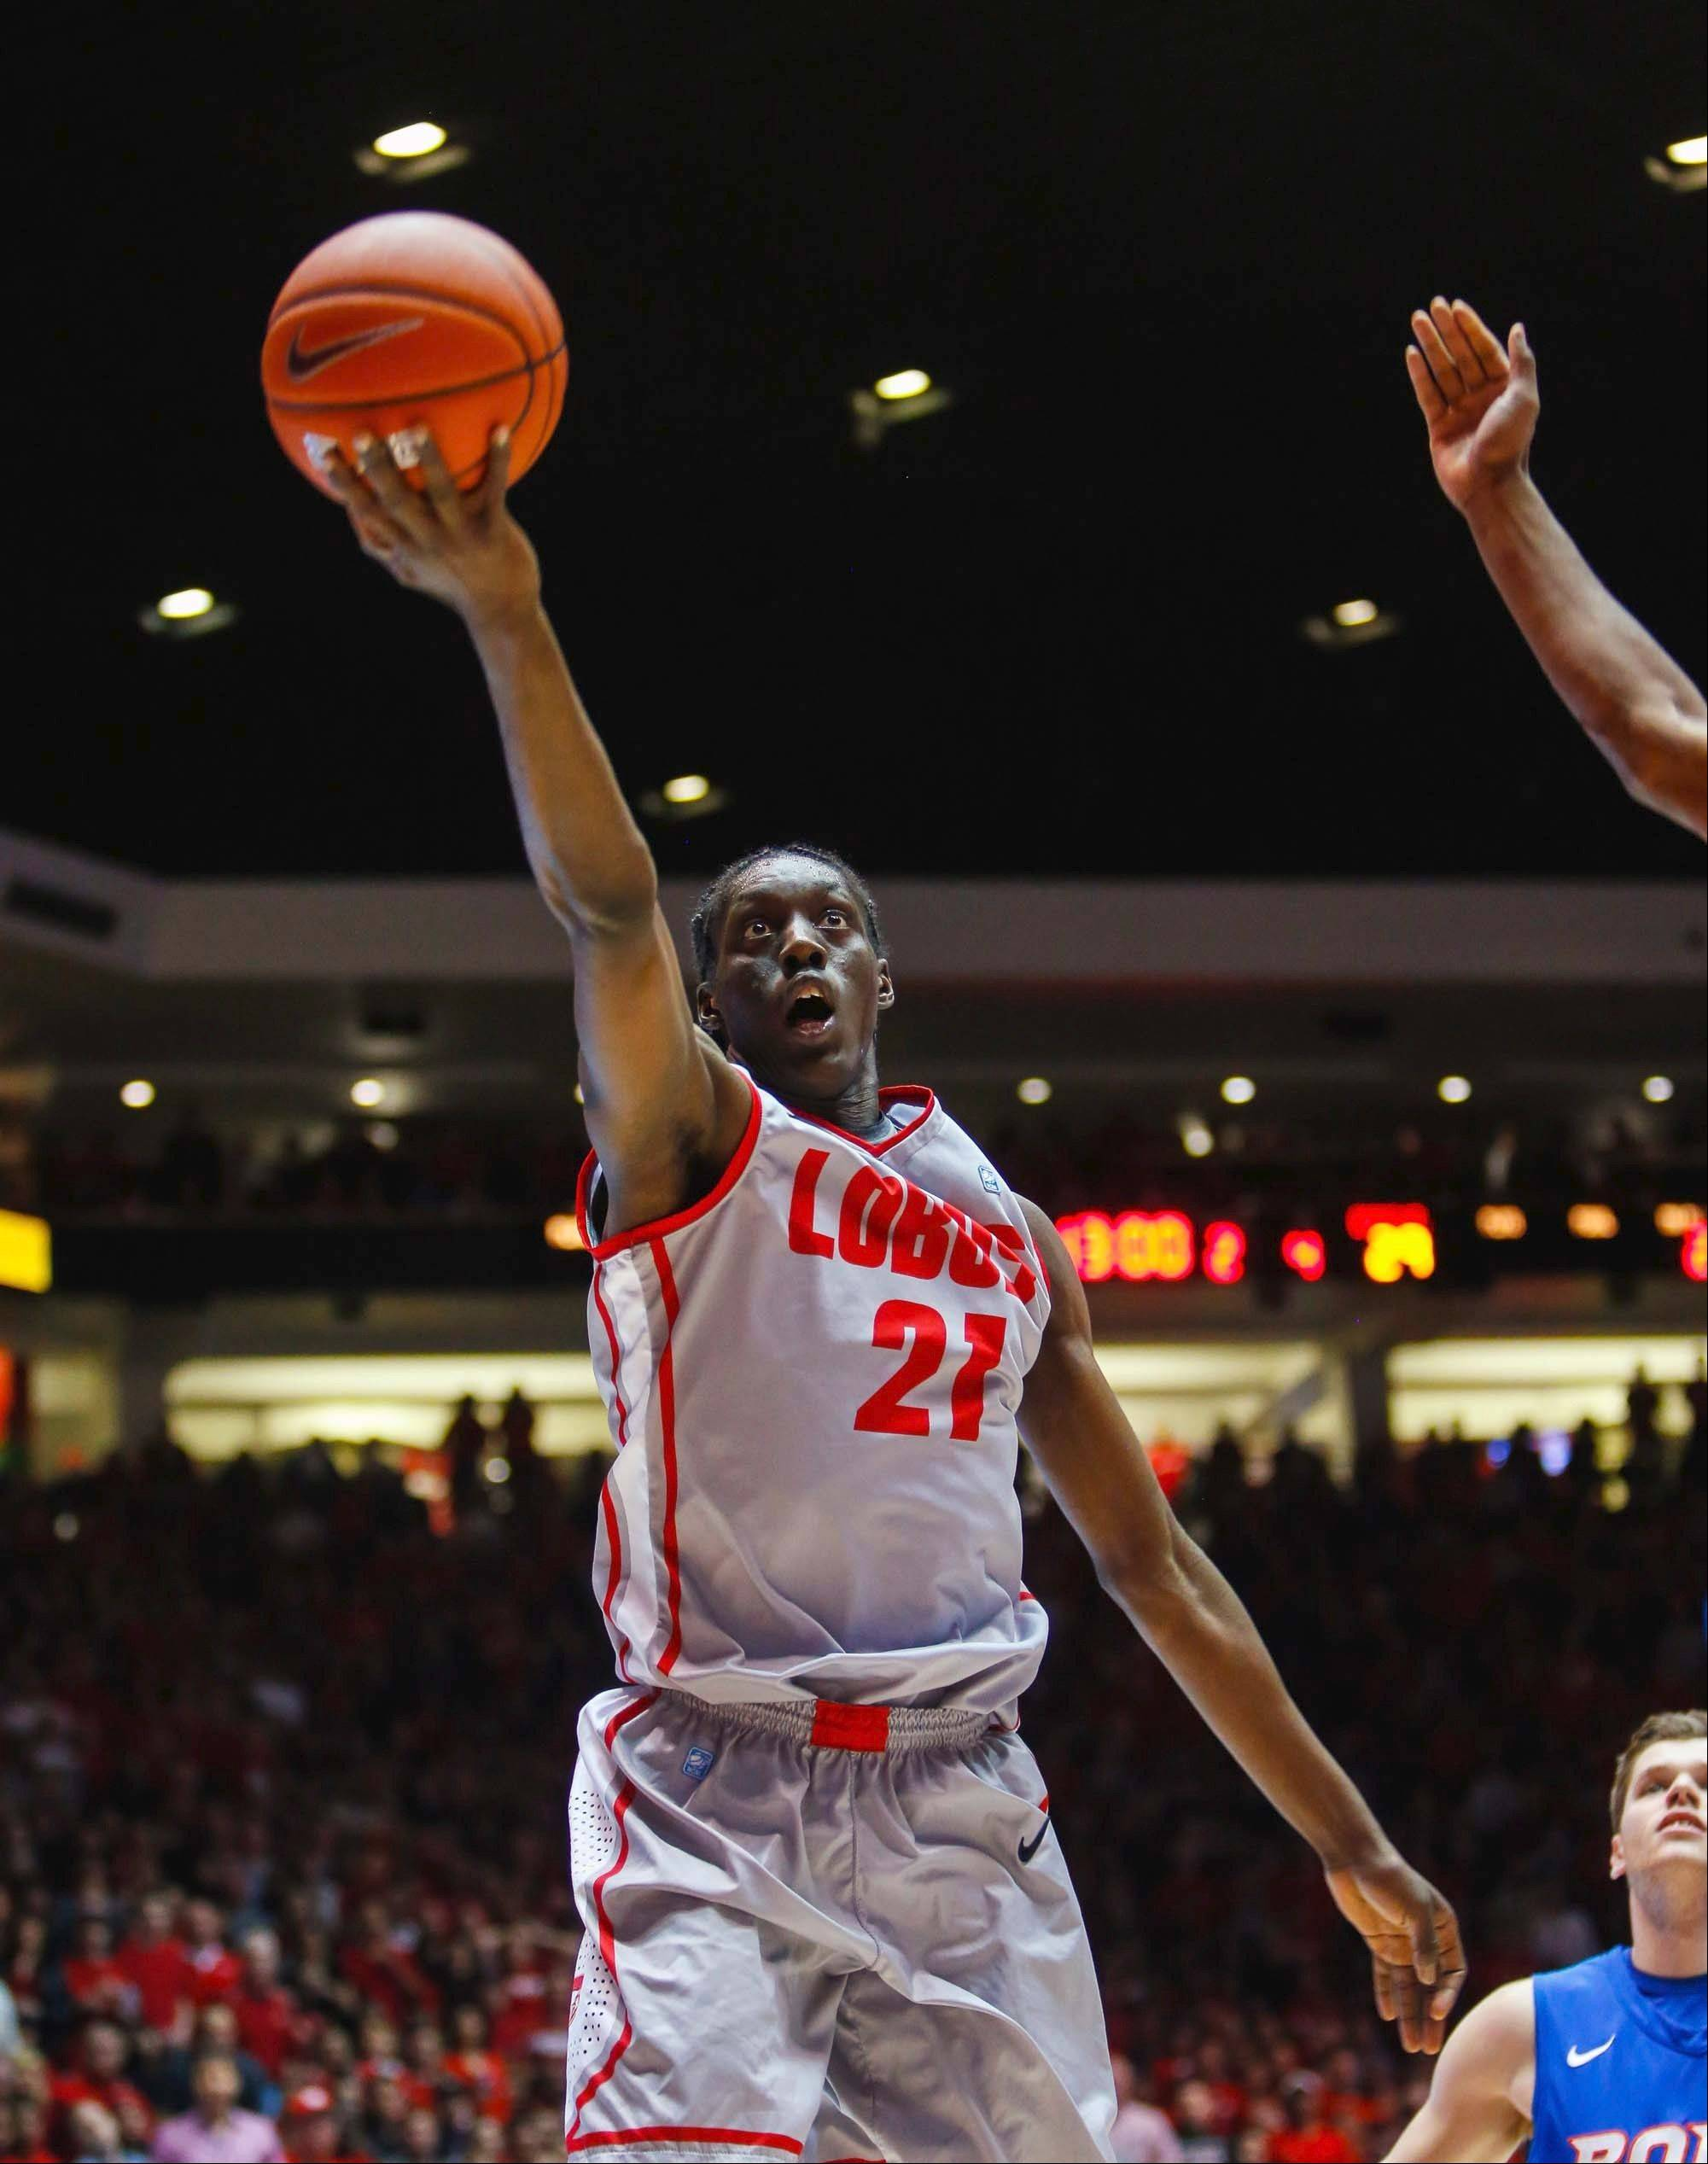 New Mexico's Tony Snell goes for a layup against Boise State in the second half of an NCAA college basketball game Saturday, Feb. 16, 2013, at the Pit in Albuquerque, N.M. New Mexico won 60-50. (AP Photo/Jake Schoellkopf)